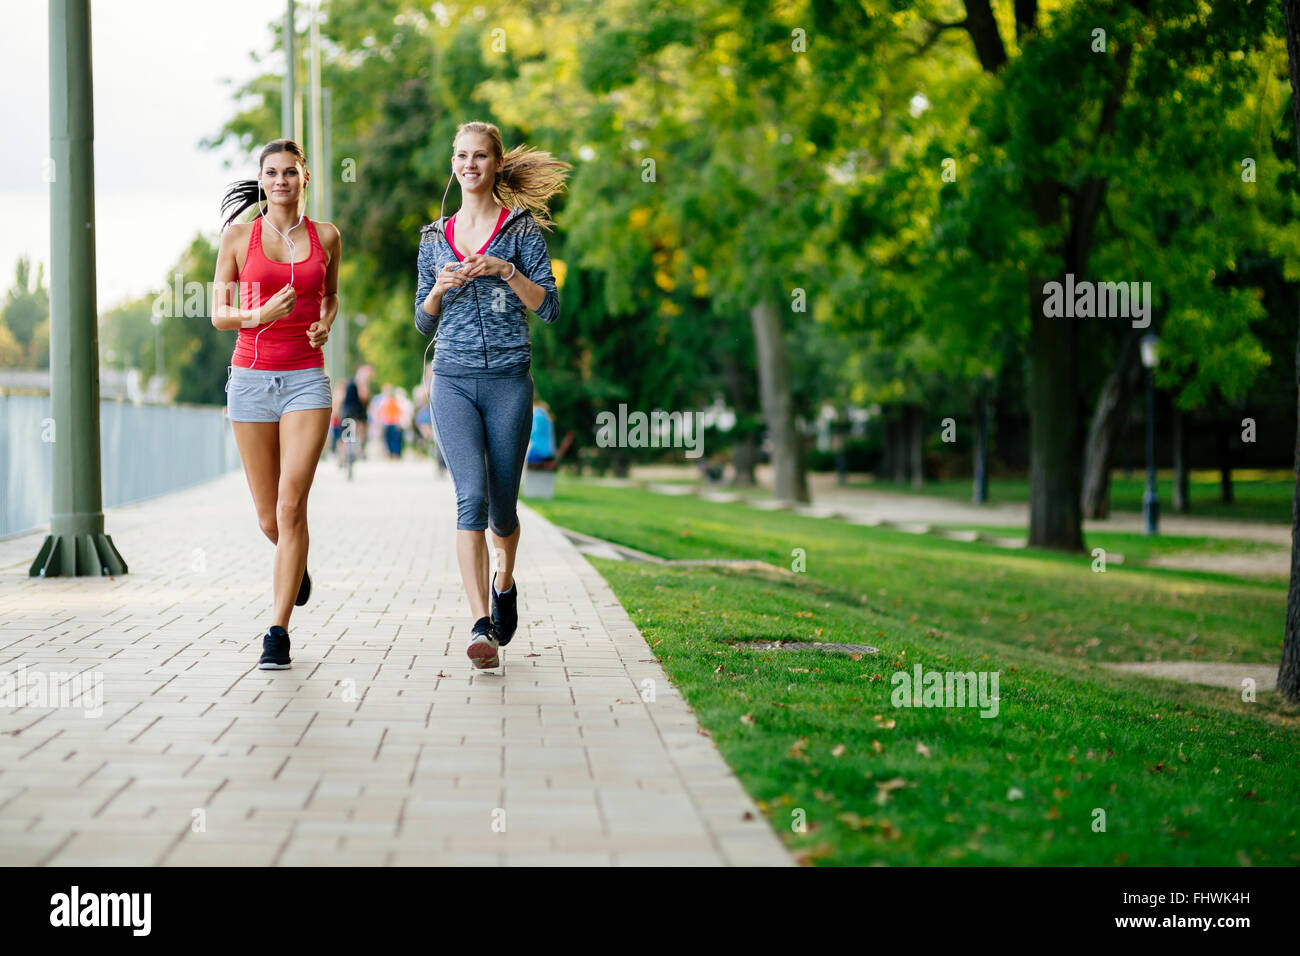 Two women jogging in park and listening to music - Stock Image